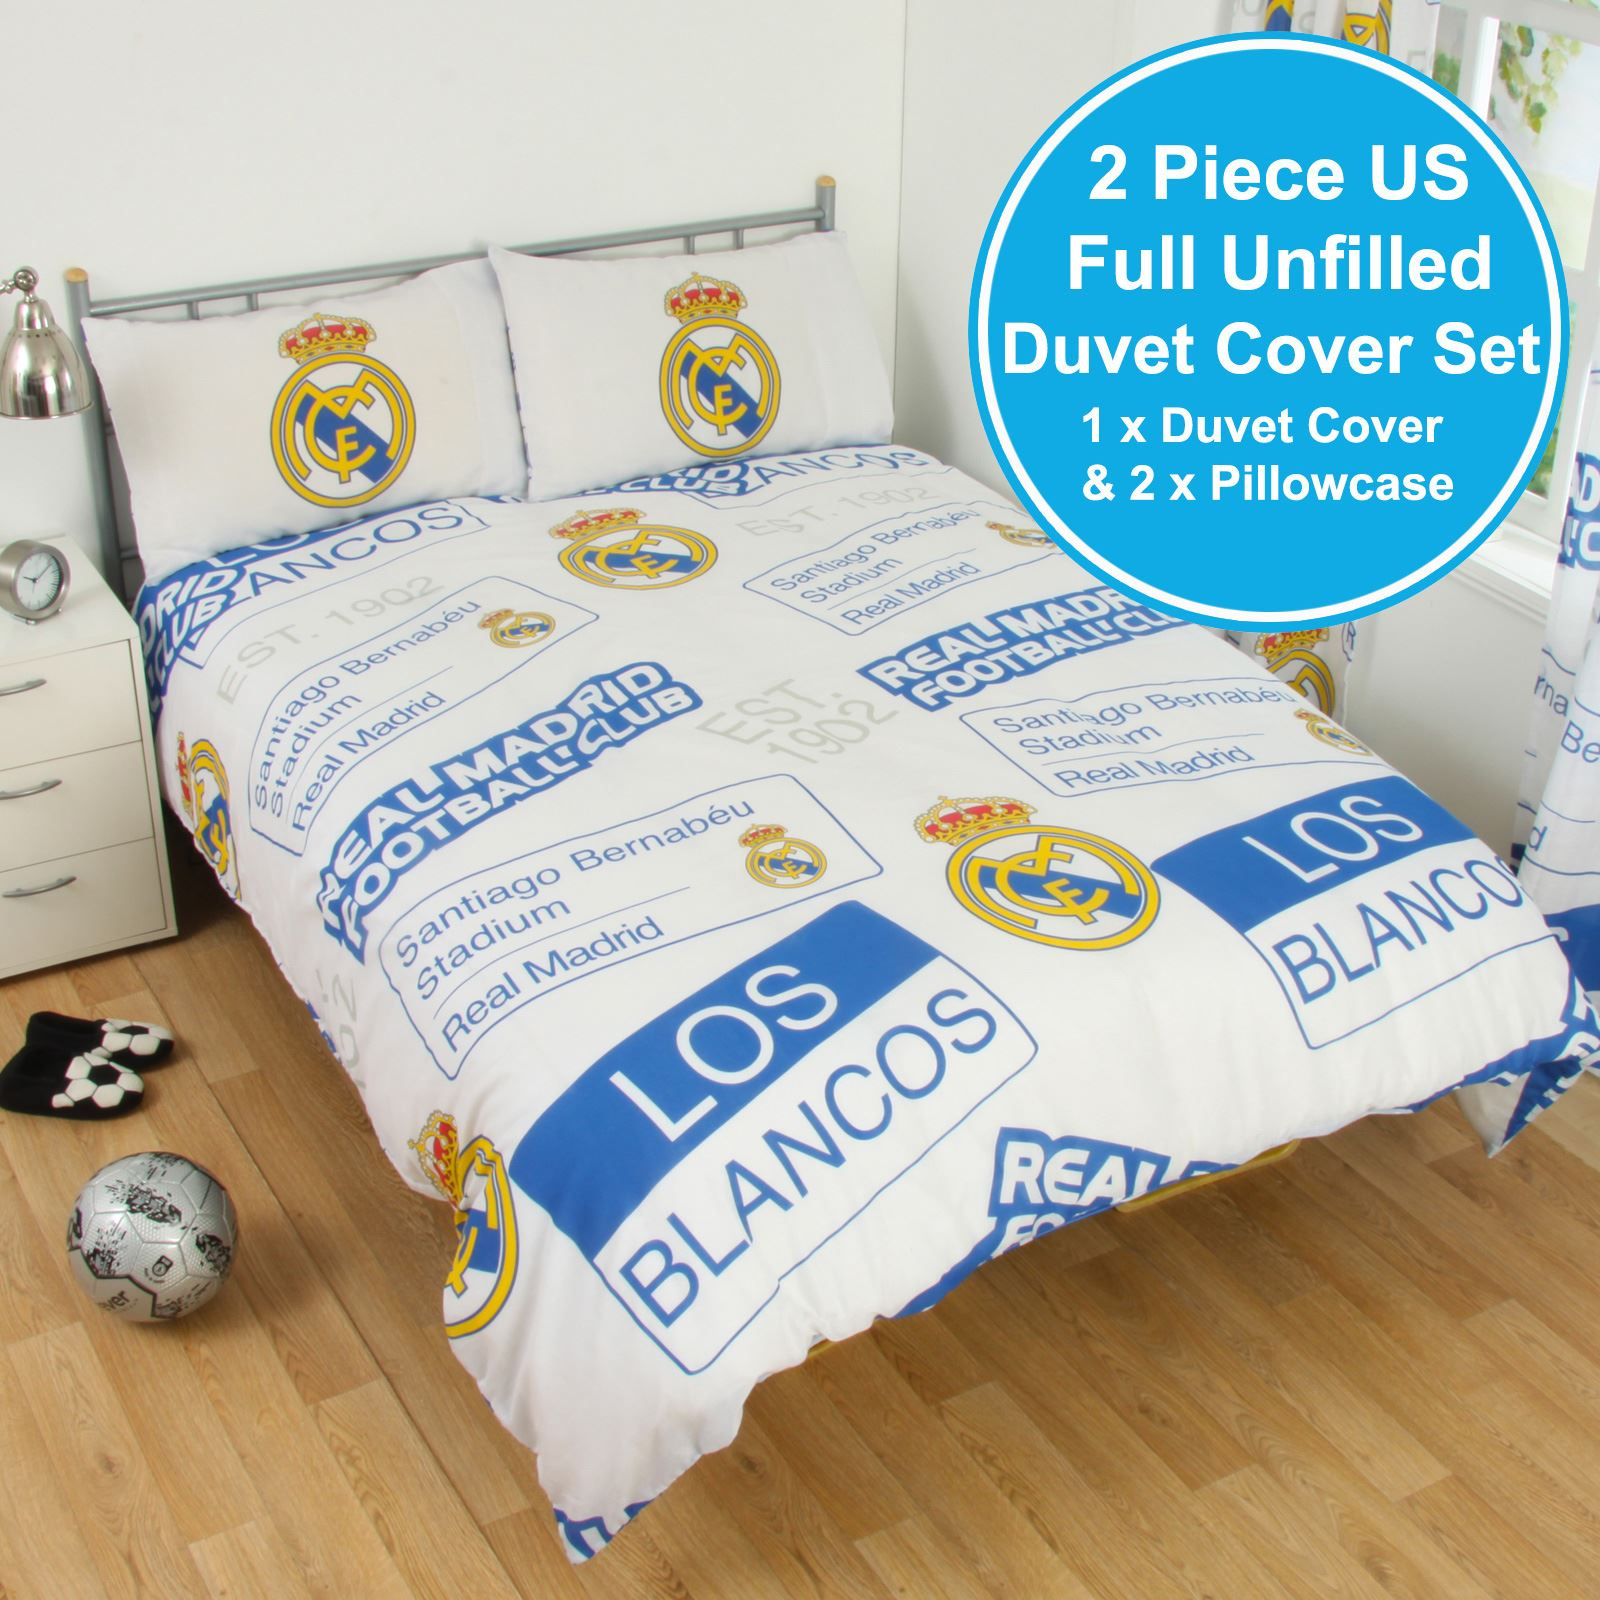 3D Effect Bedding Complete Set With Duvet Cover,Pillow Cases /& Fitted Sheet 238